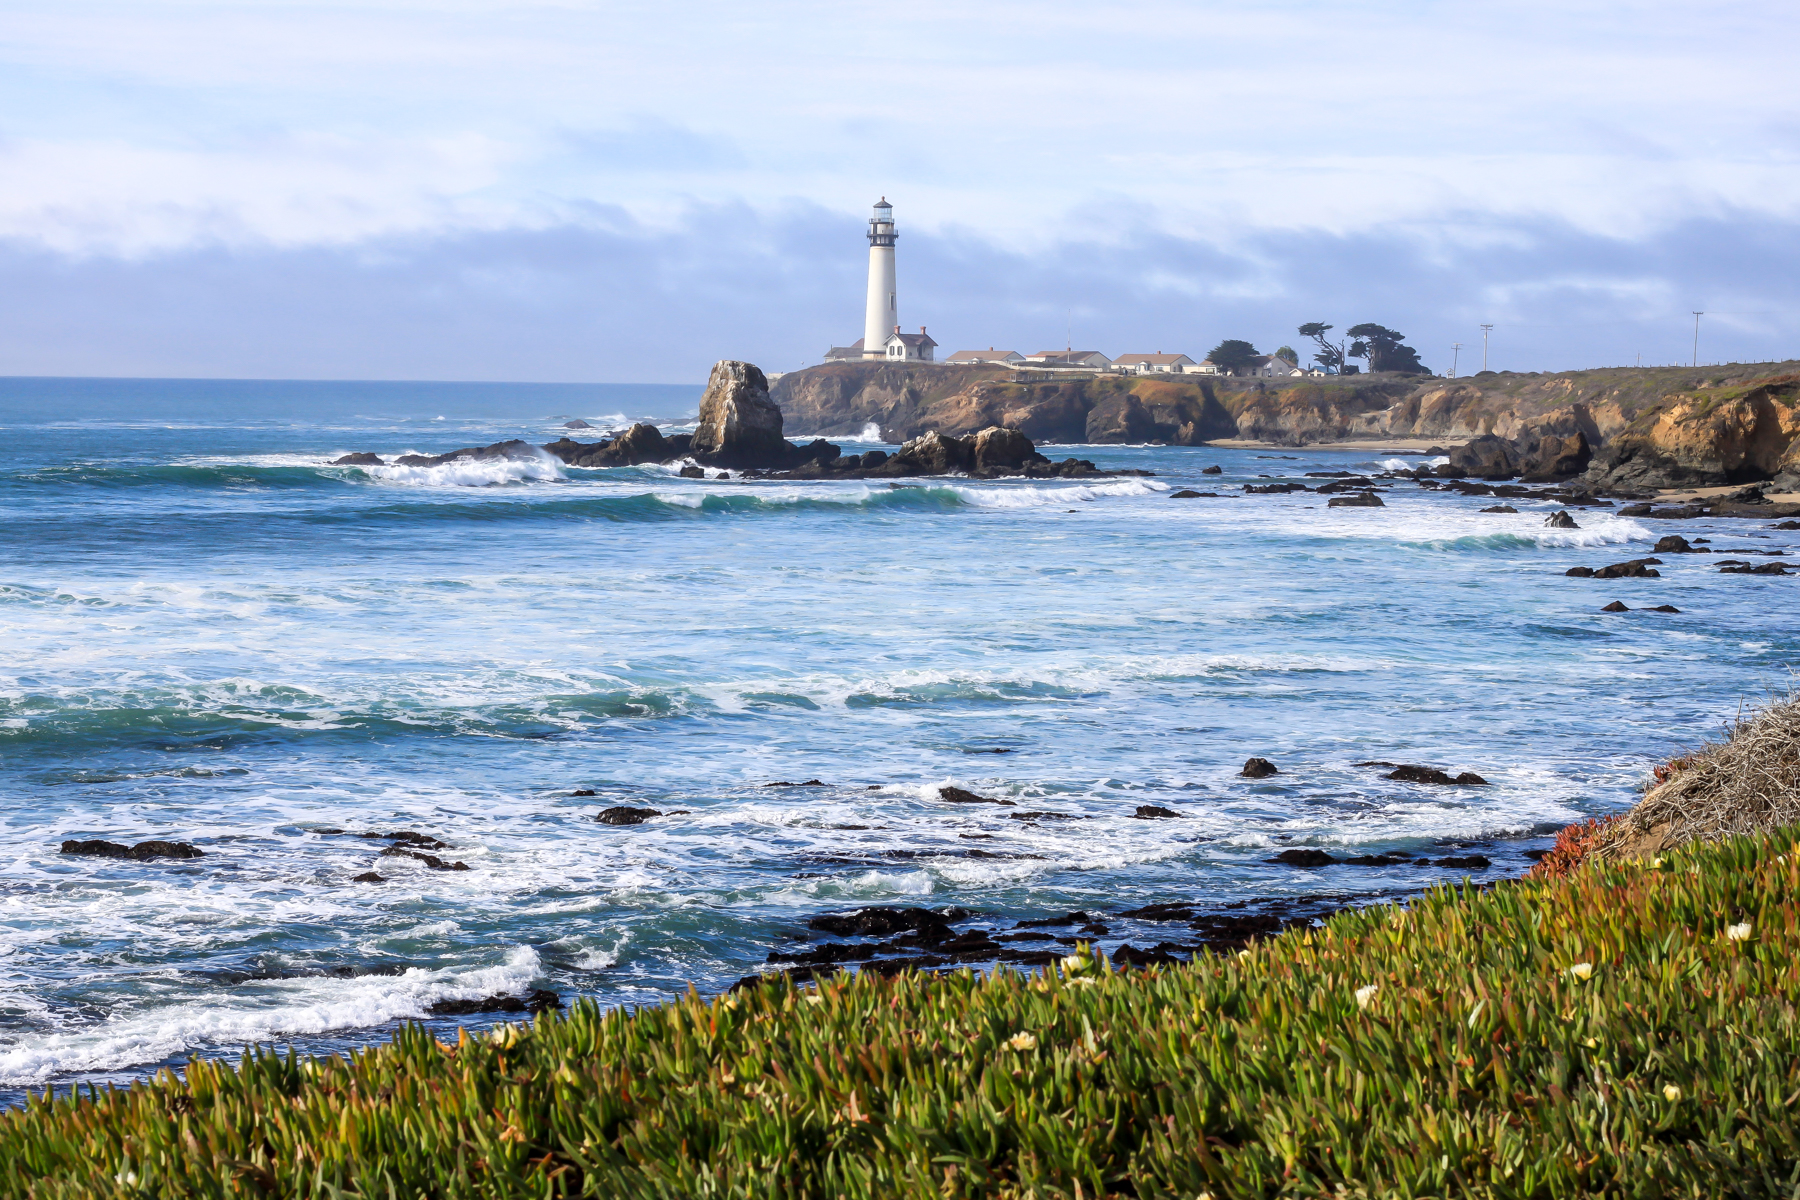 Pigeon Point Lighthouse - Photo by Garrick Ramirez